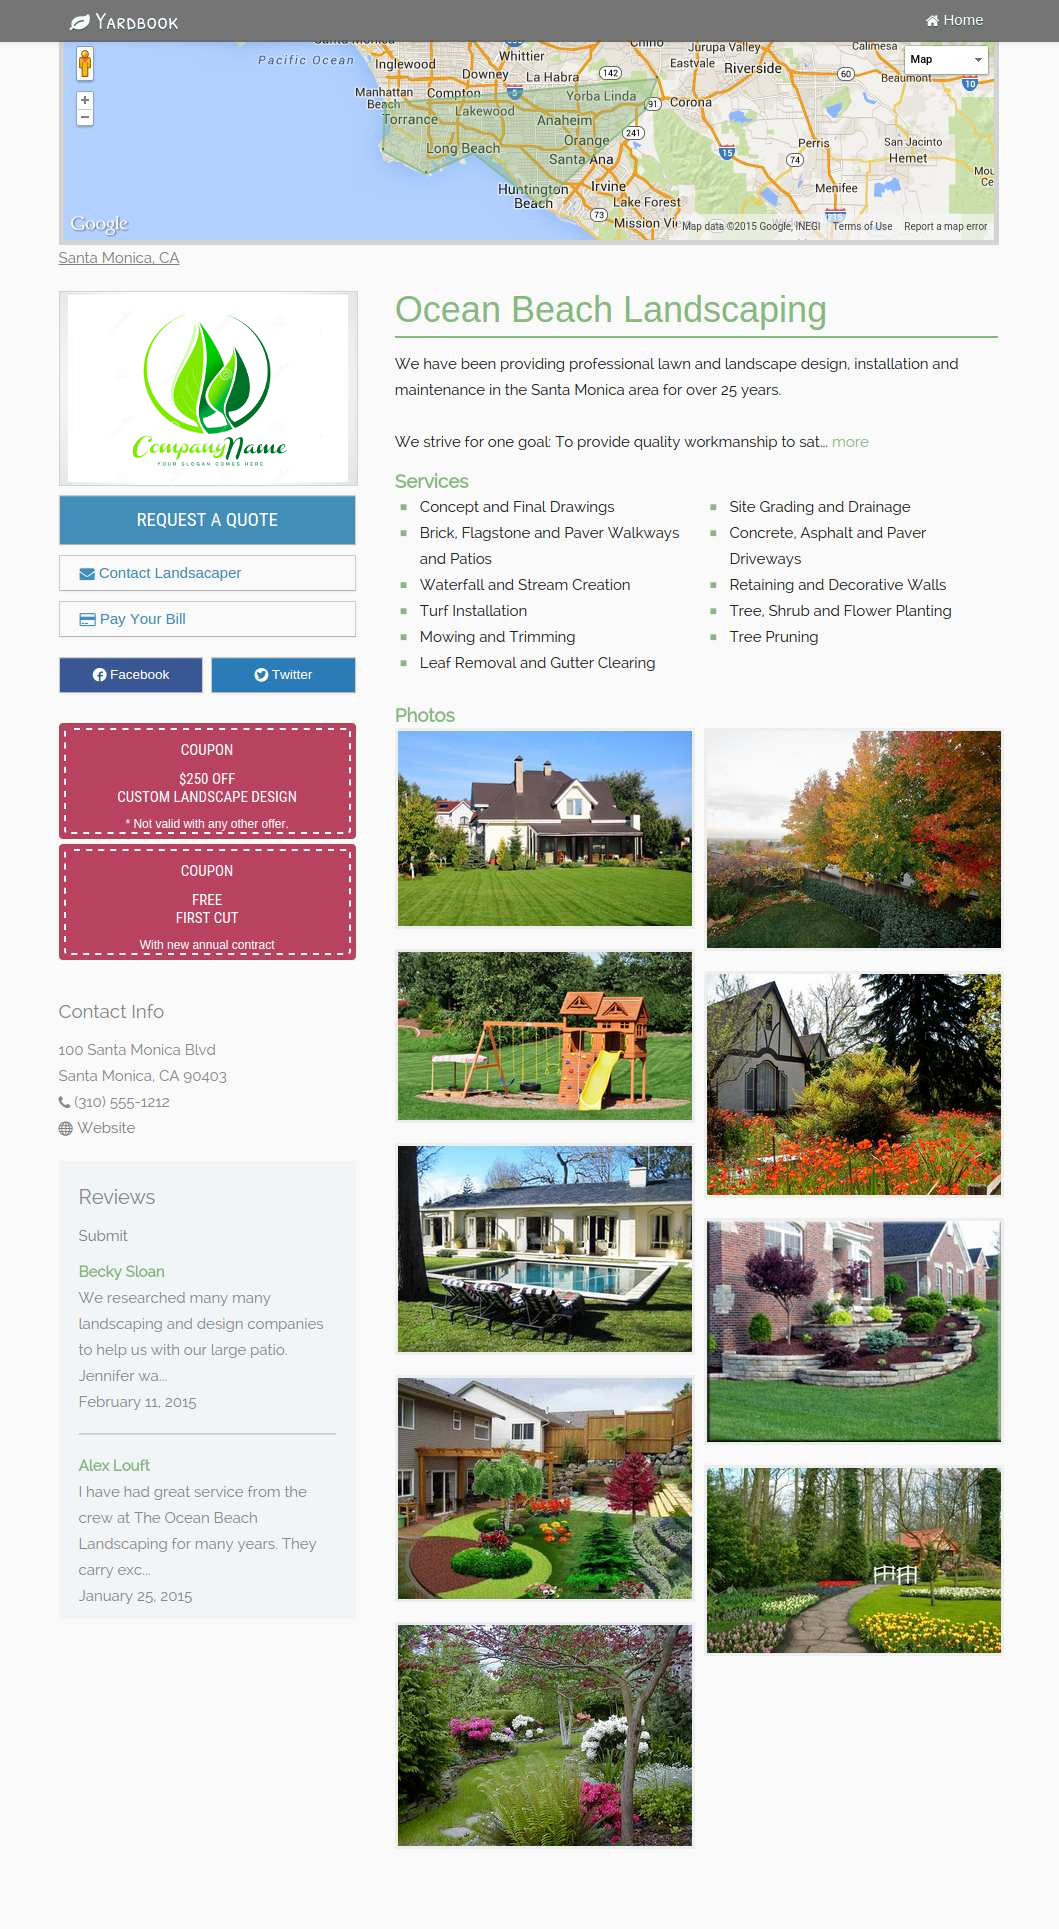 Landscaping Business Software Lawn Care Business Software Yardbook